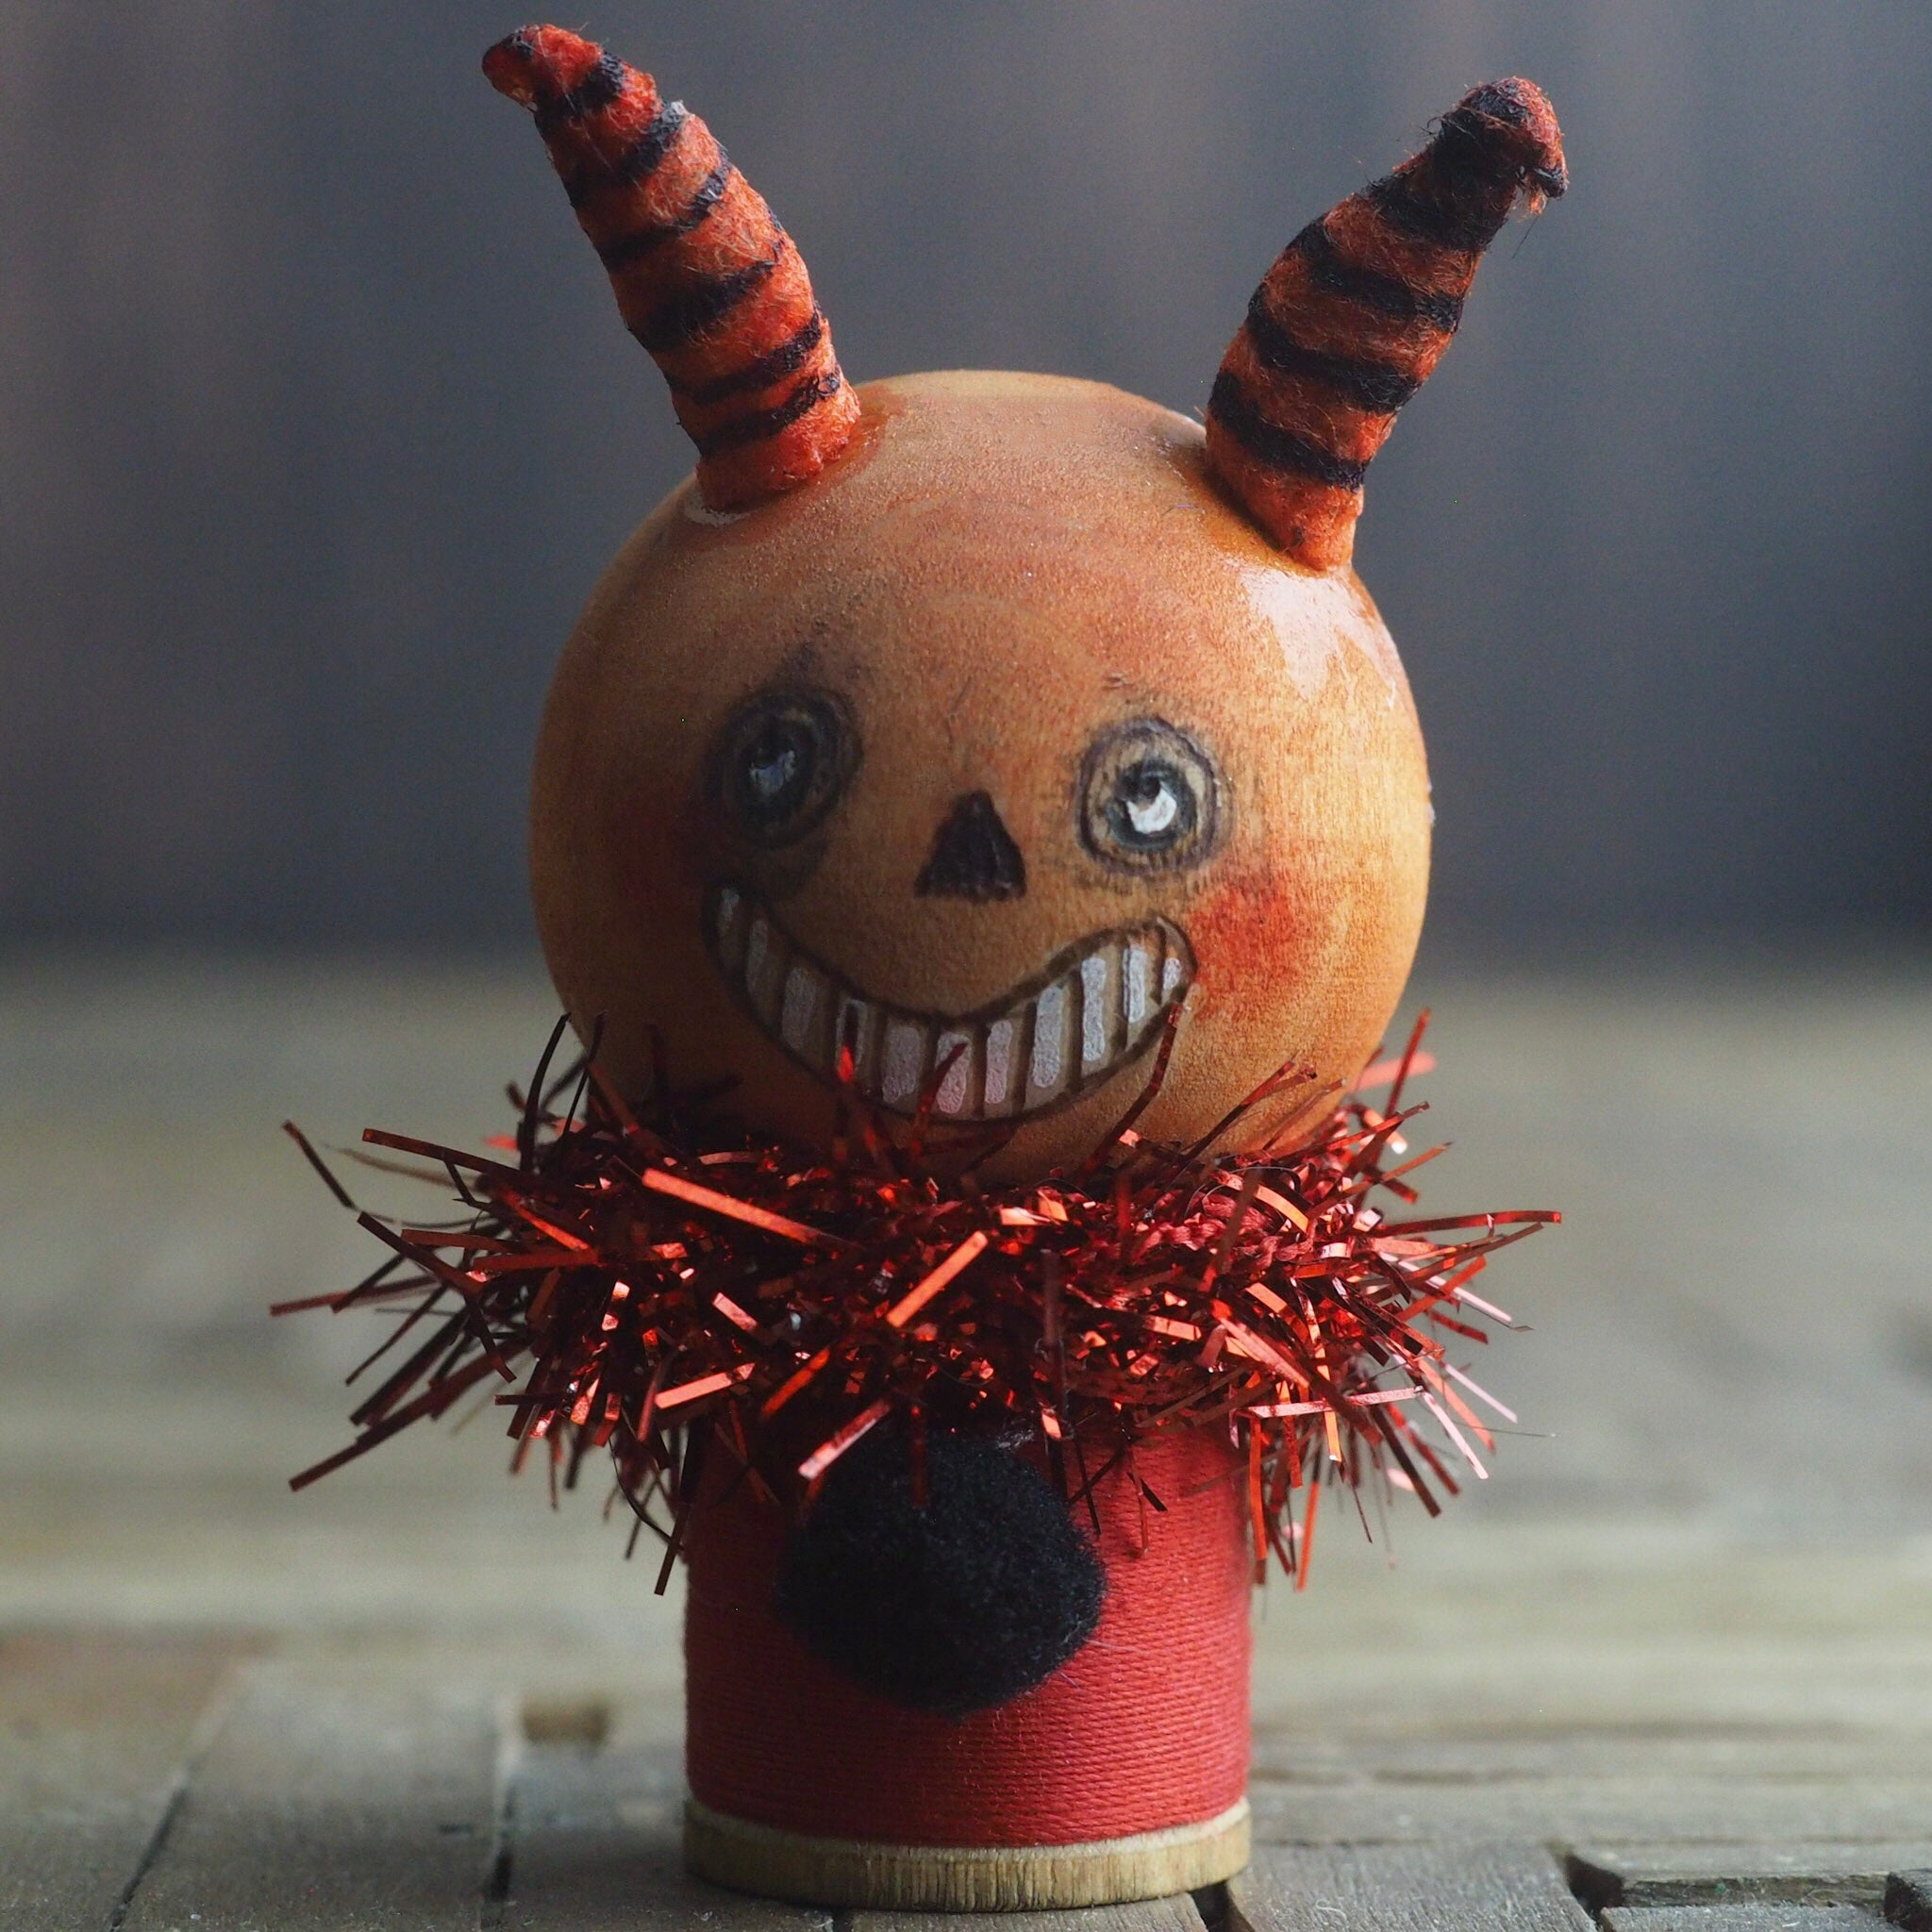 Danita kokeshi folk art vintage Halloween spook art doll original home decor decoration devil demon Lucifer figurine Satan